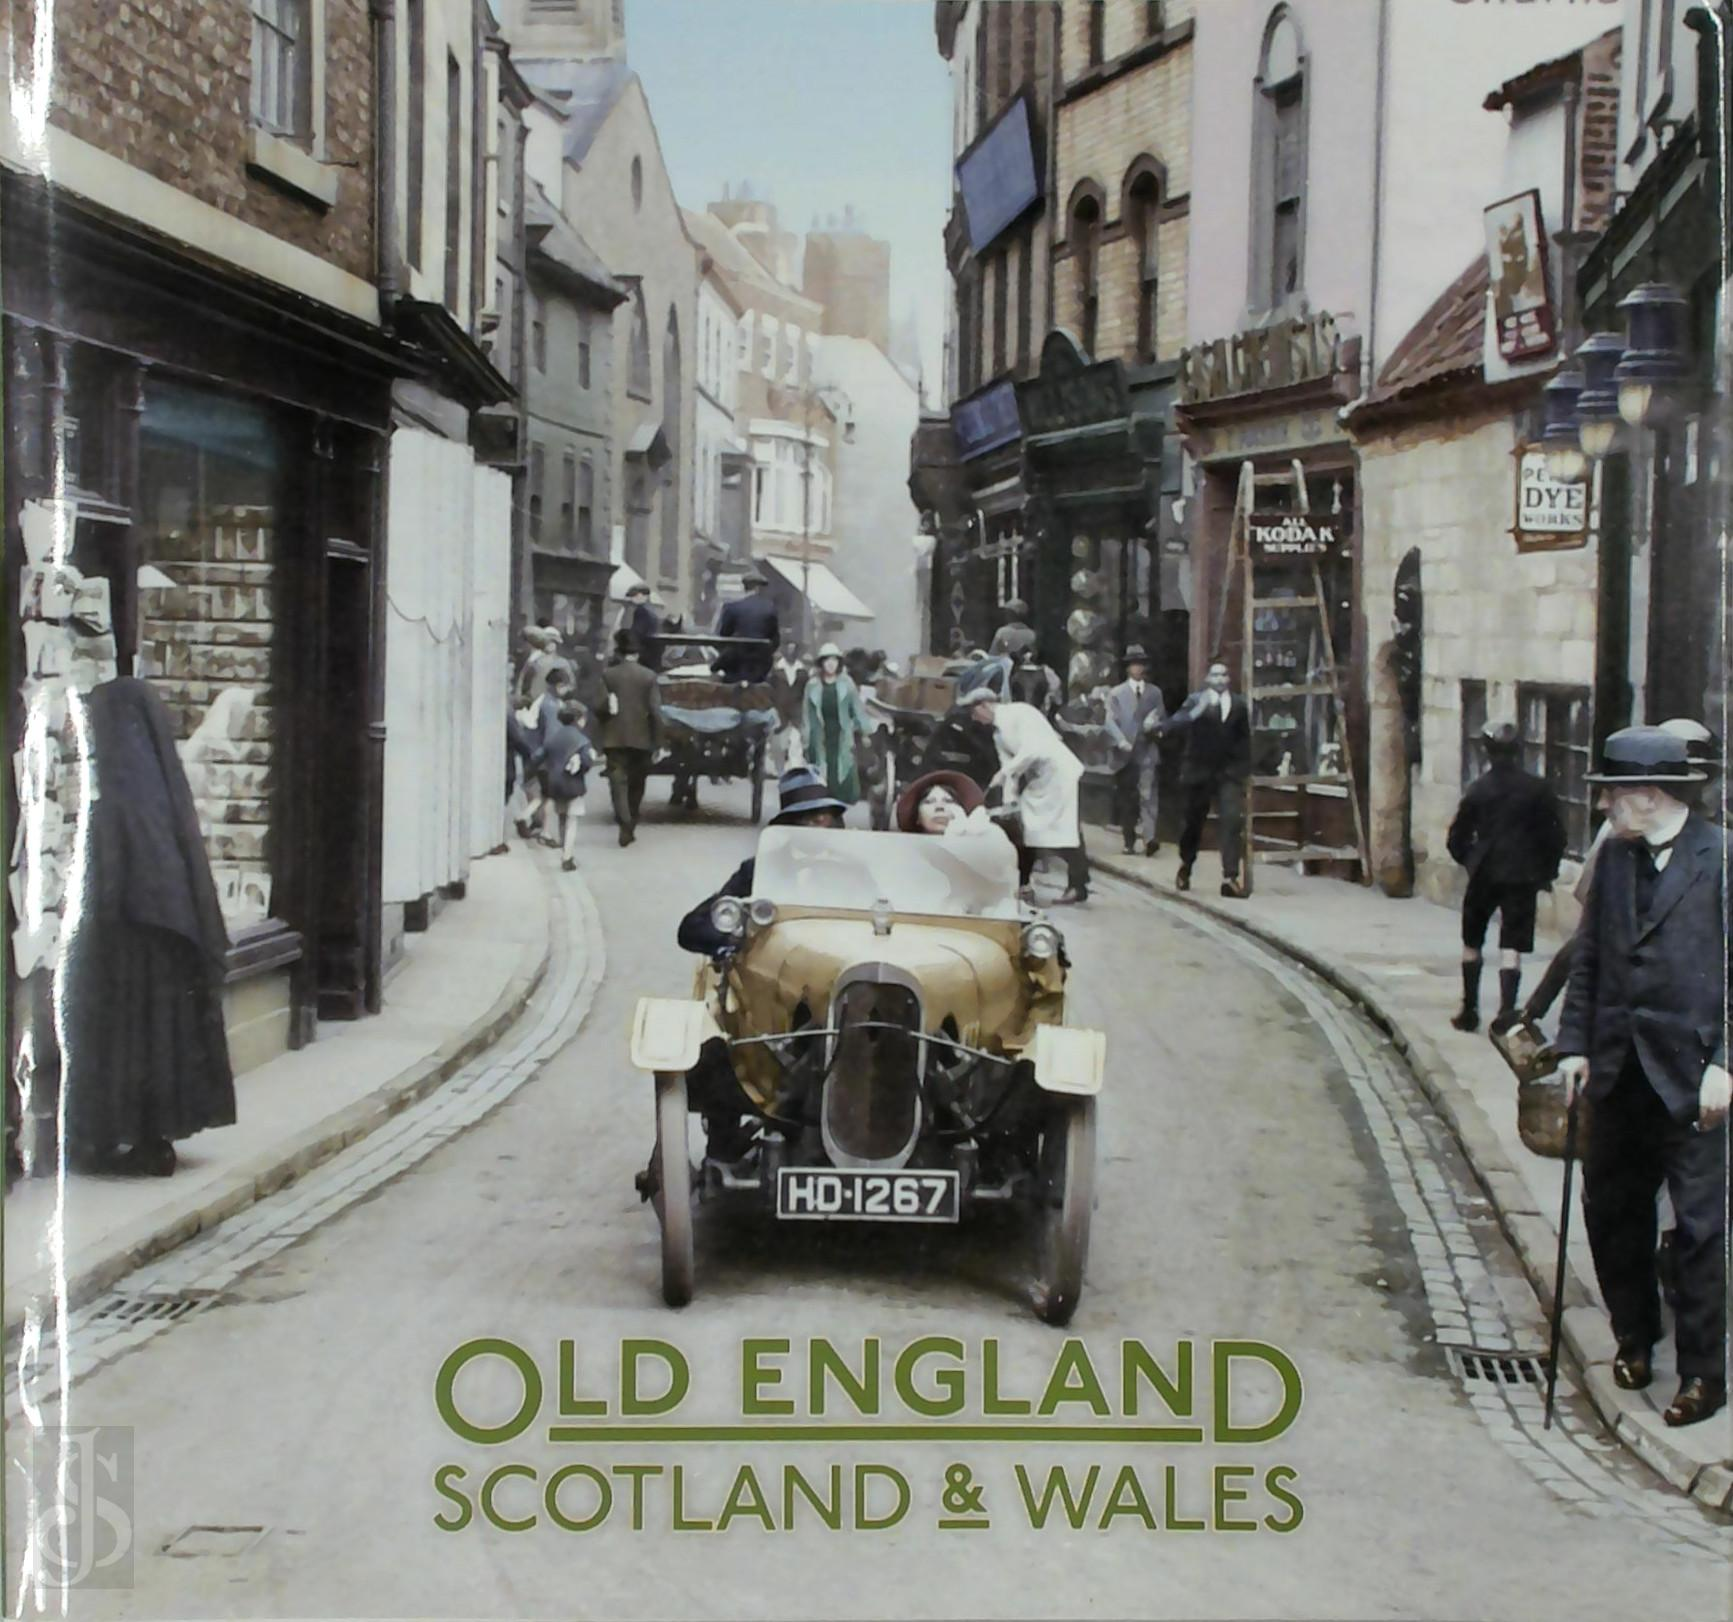 - Old England Scotland & Wales